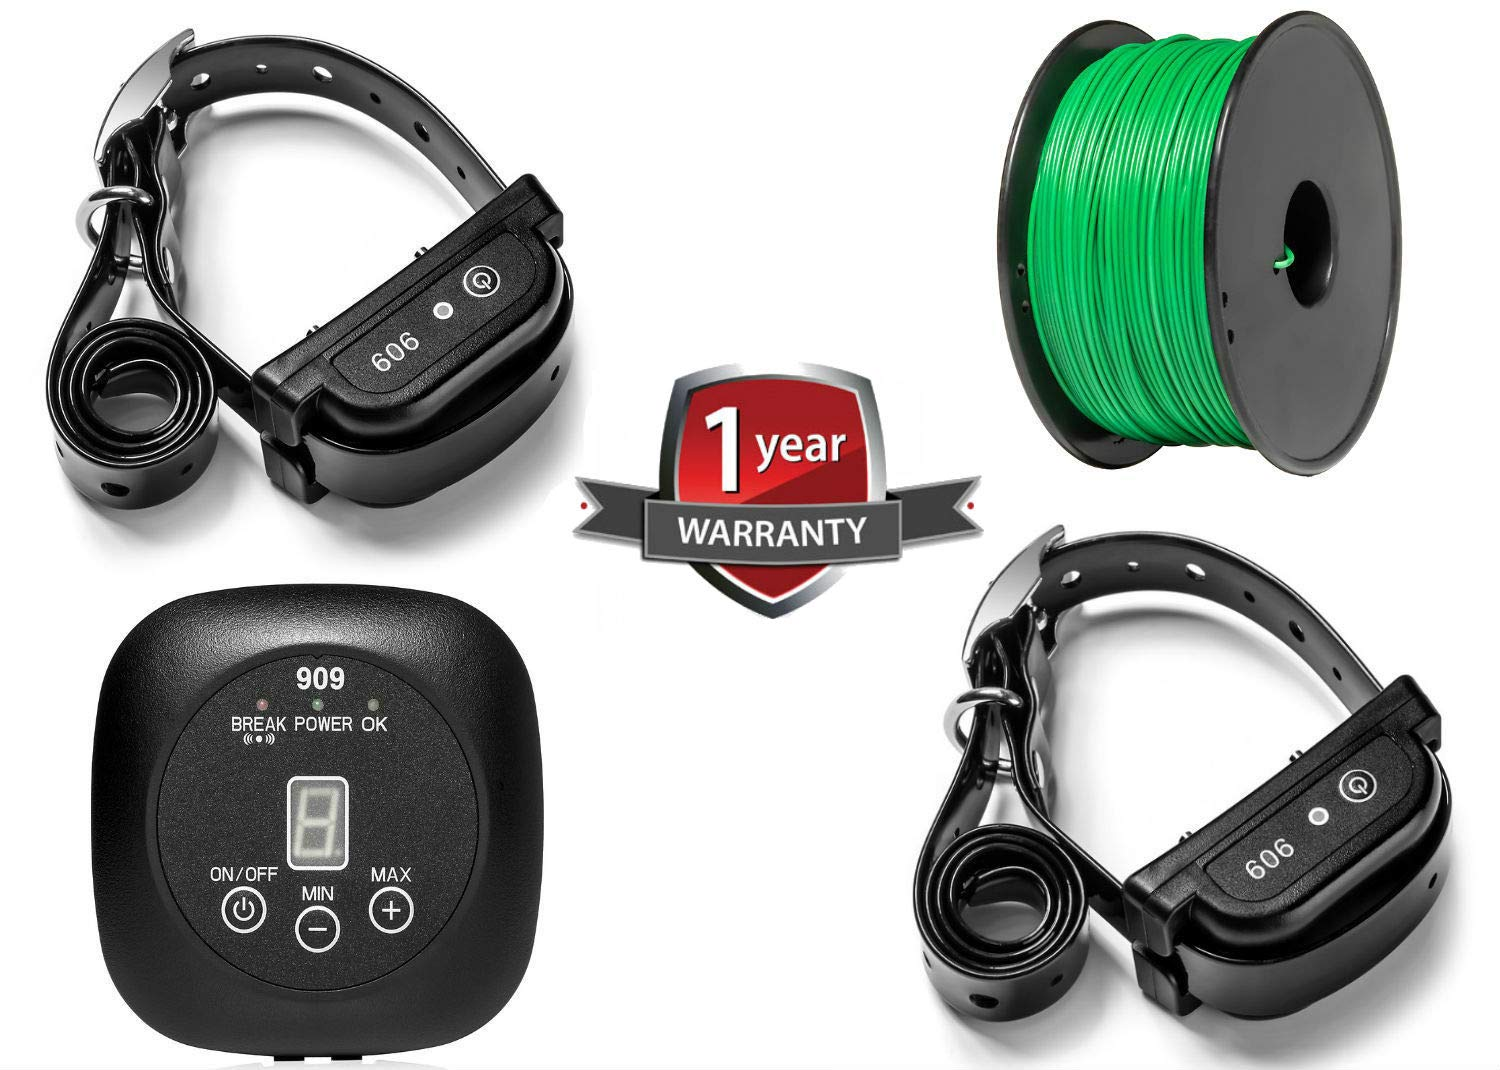 Earlyhights Electric Underground Outdoor Dog Containment System,5 Acre Range 500 Feet In Ground Wire, Small, Medium, Or Large Dogs Over 5 lbs